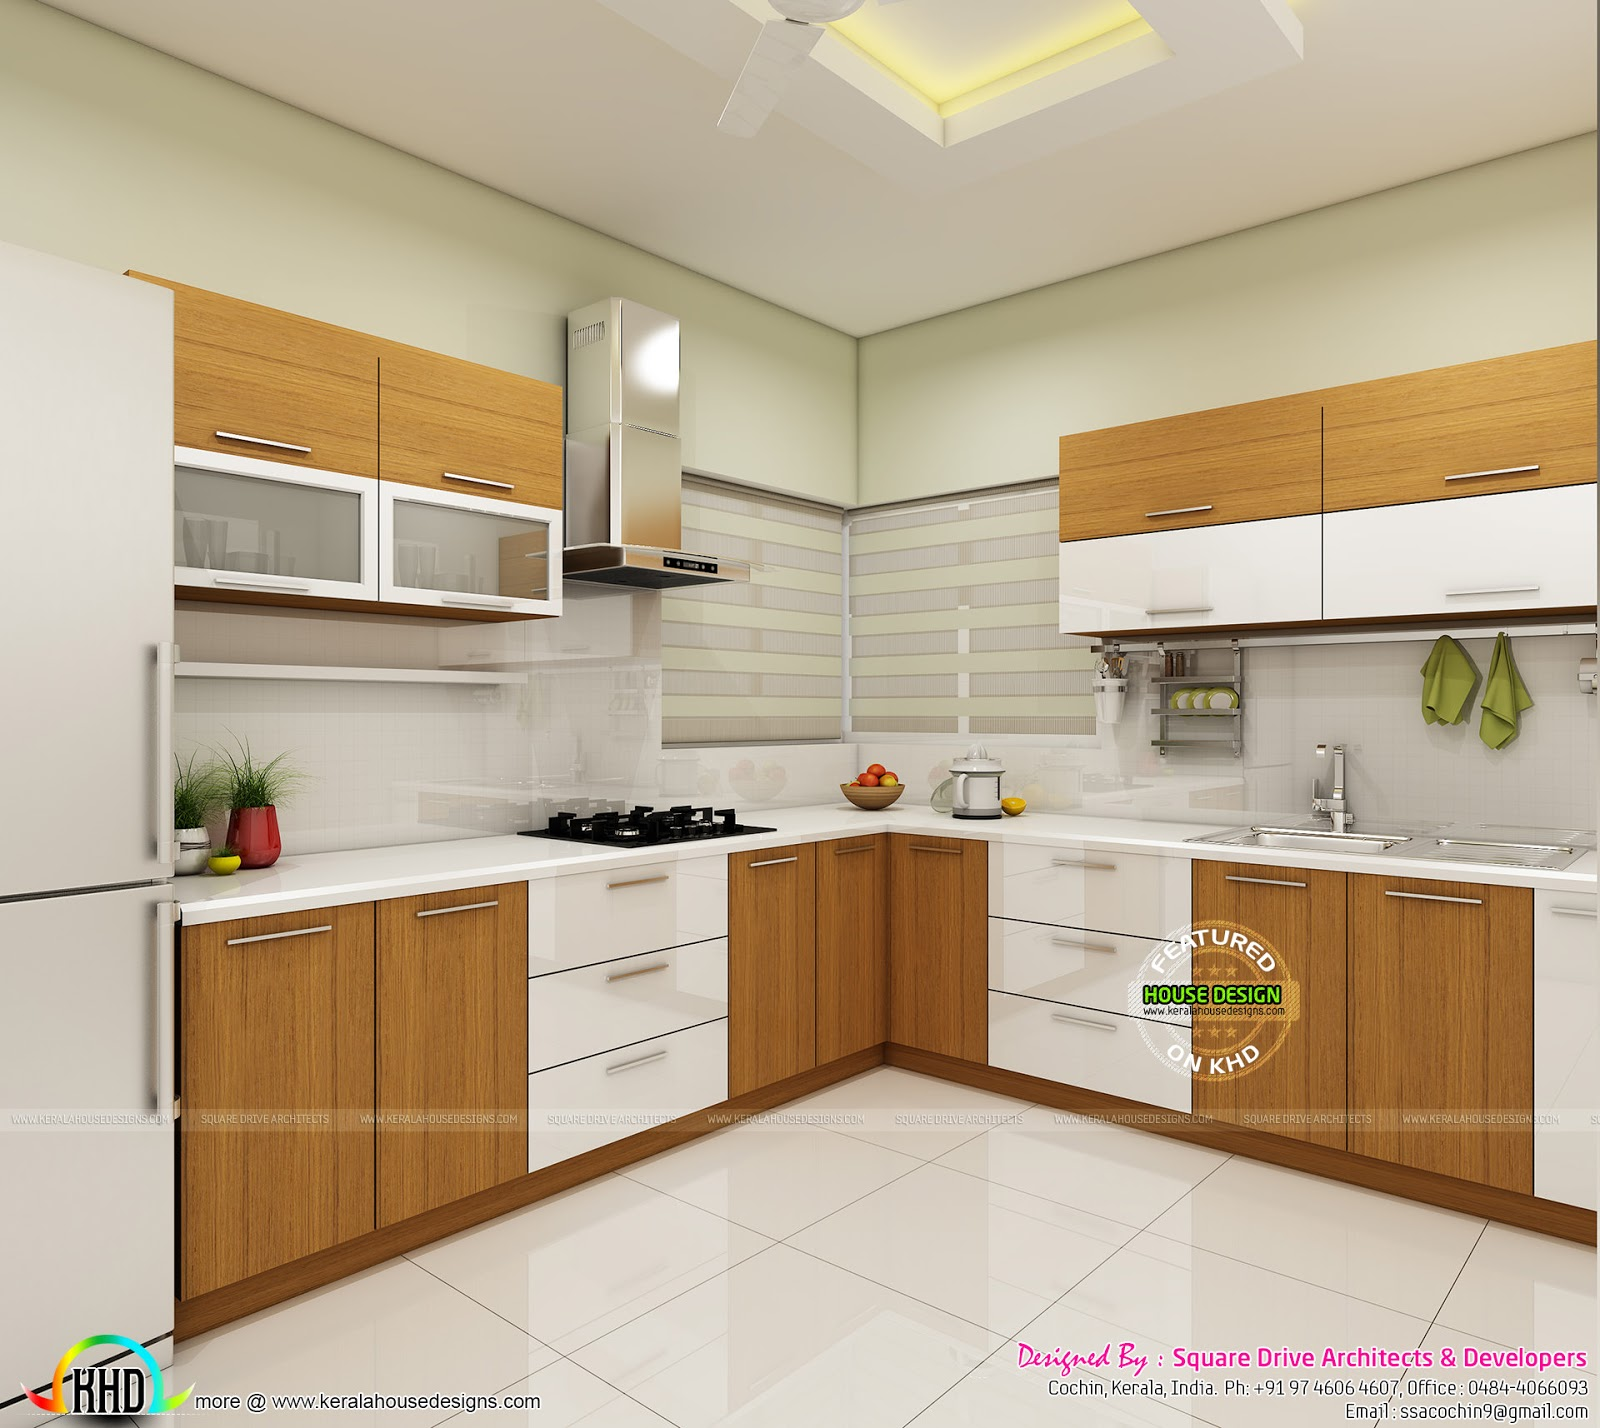 Modern home interiors of bedroom dining kitchen kerala for Kitchen interior designs pictures